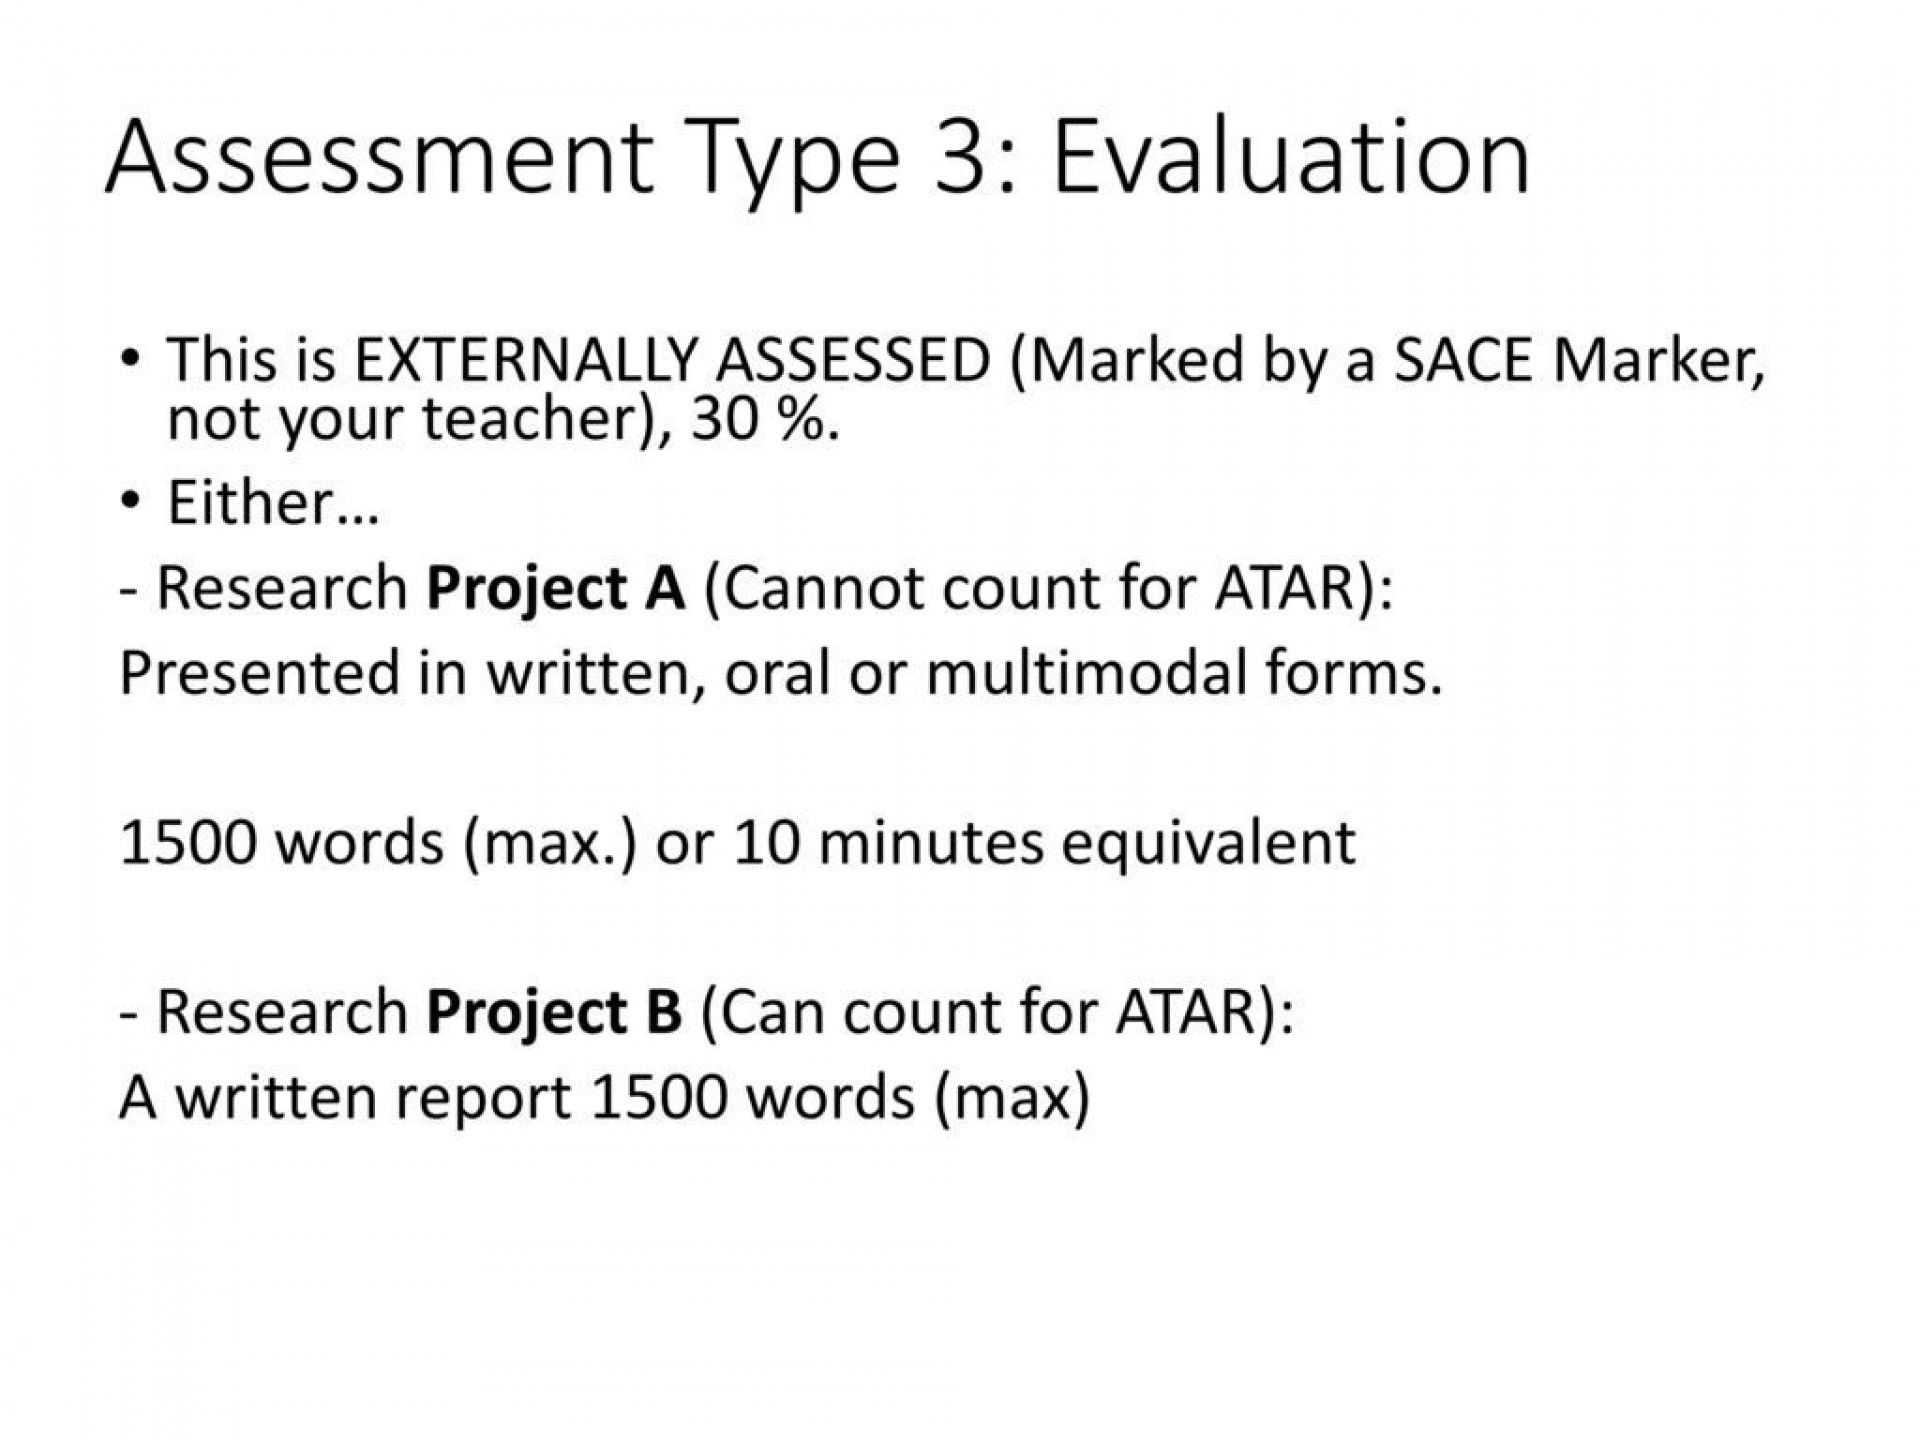 004 Remarkable Research Project Proposal Example Sace 1920